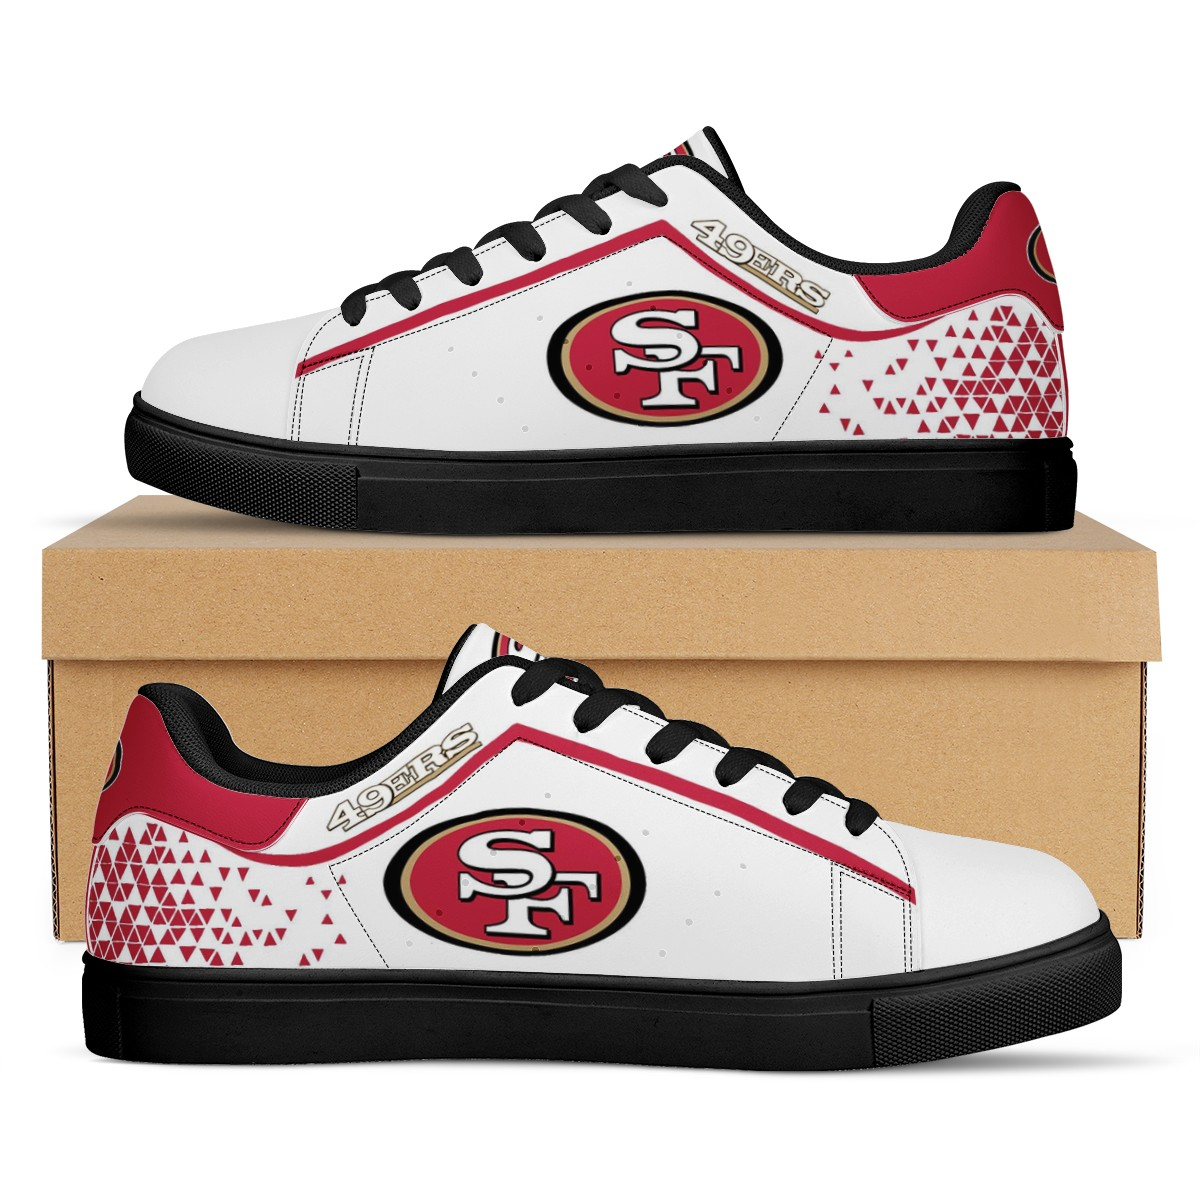 Men's San Francisco 49ers Low Top Leather Sneakers 001